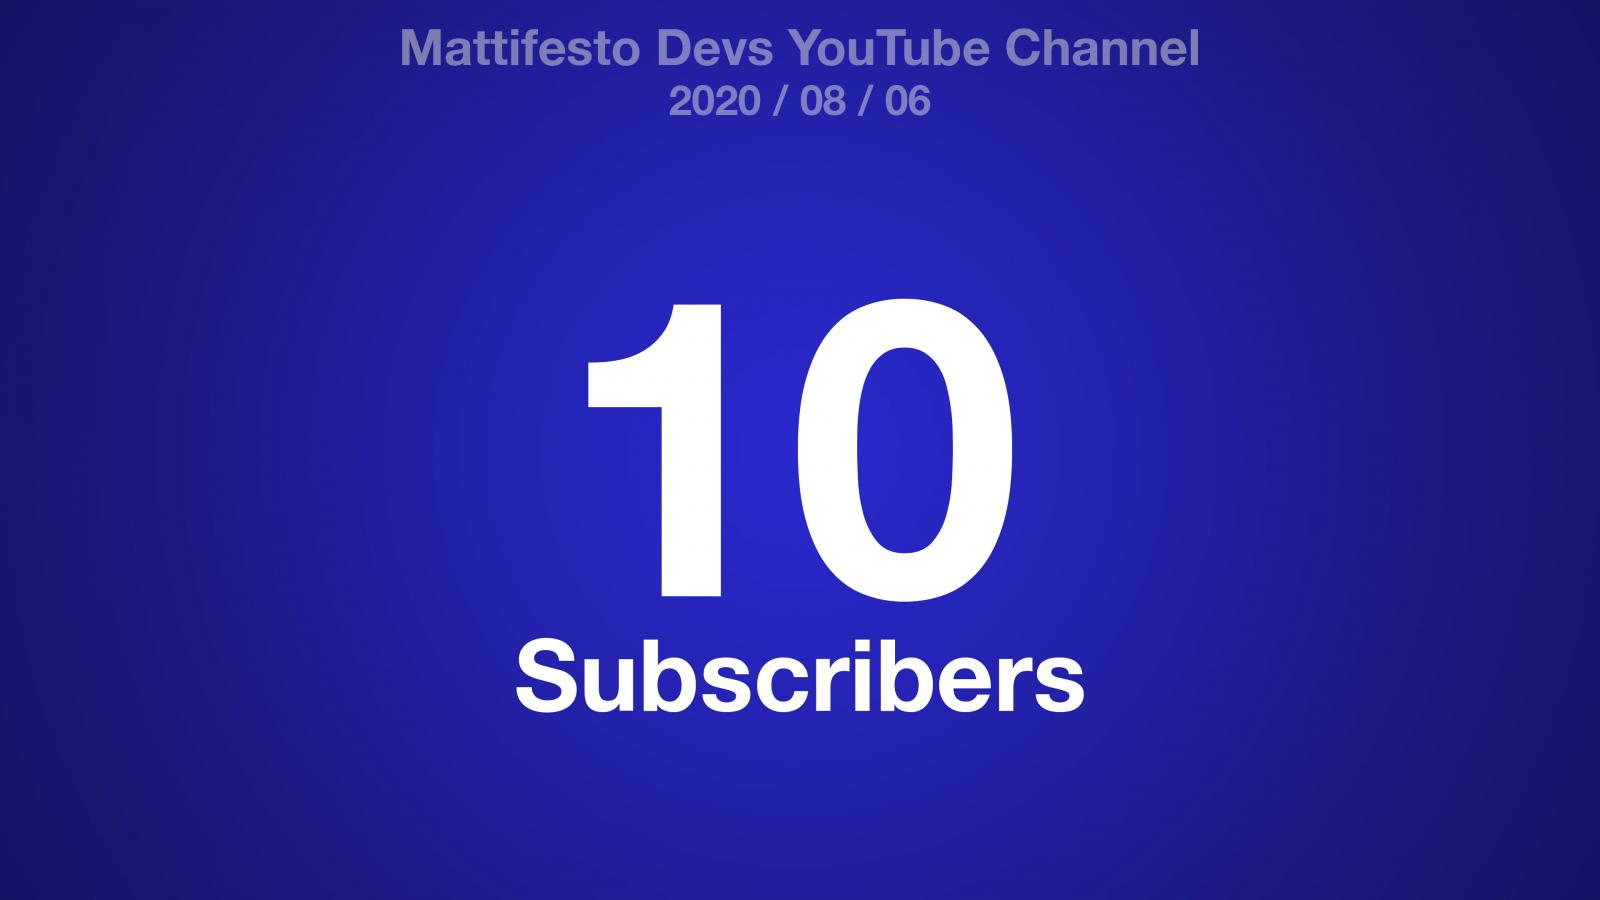 A blue radial gradient background with the text: Mattifesto Devs YouTube Channel 2020/08/06 10 Subscribers